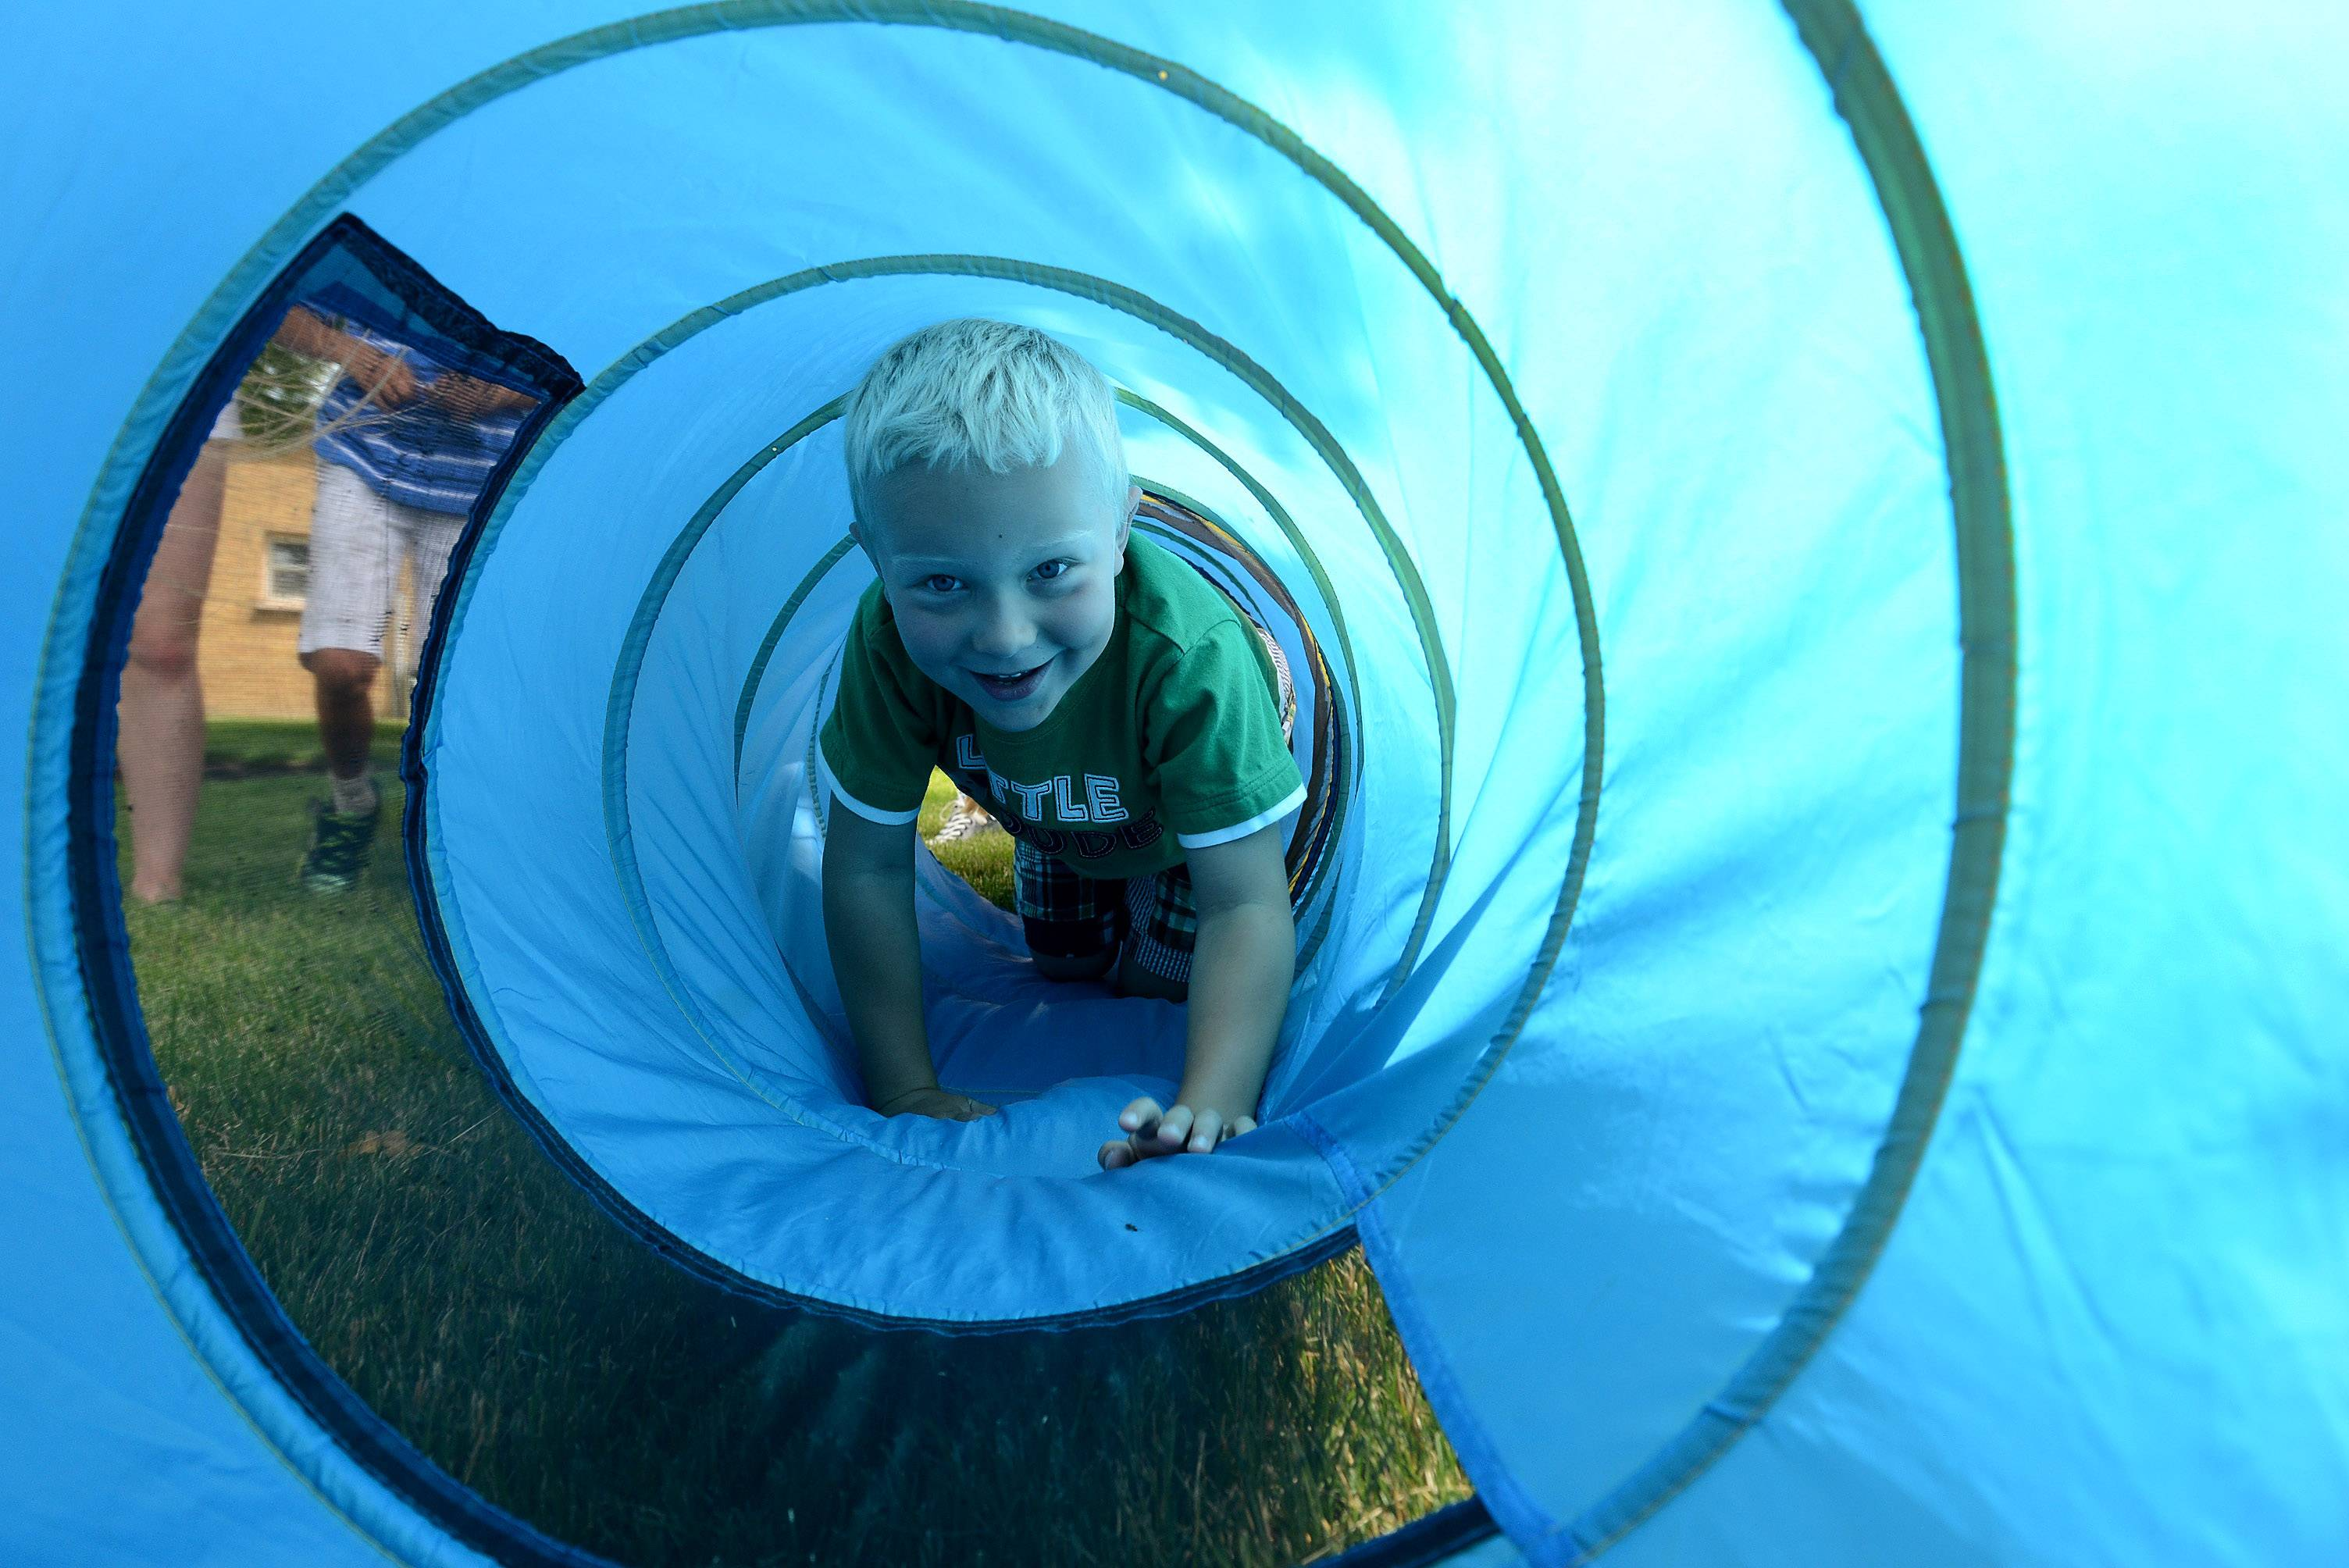 Hunter Kleiboer, 6, Lake Villa, makes his way through the tunnel on the obstacle course during the 4-H Health Rocks Summer Day Camp at the University of Illinois Extension in Grayslake for 5- to 7-year-olds.